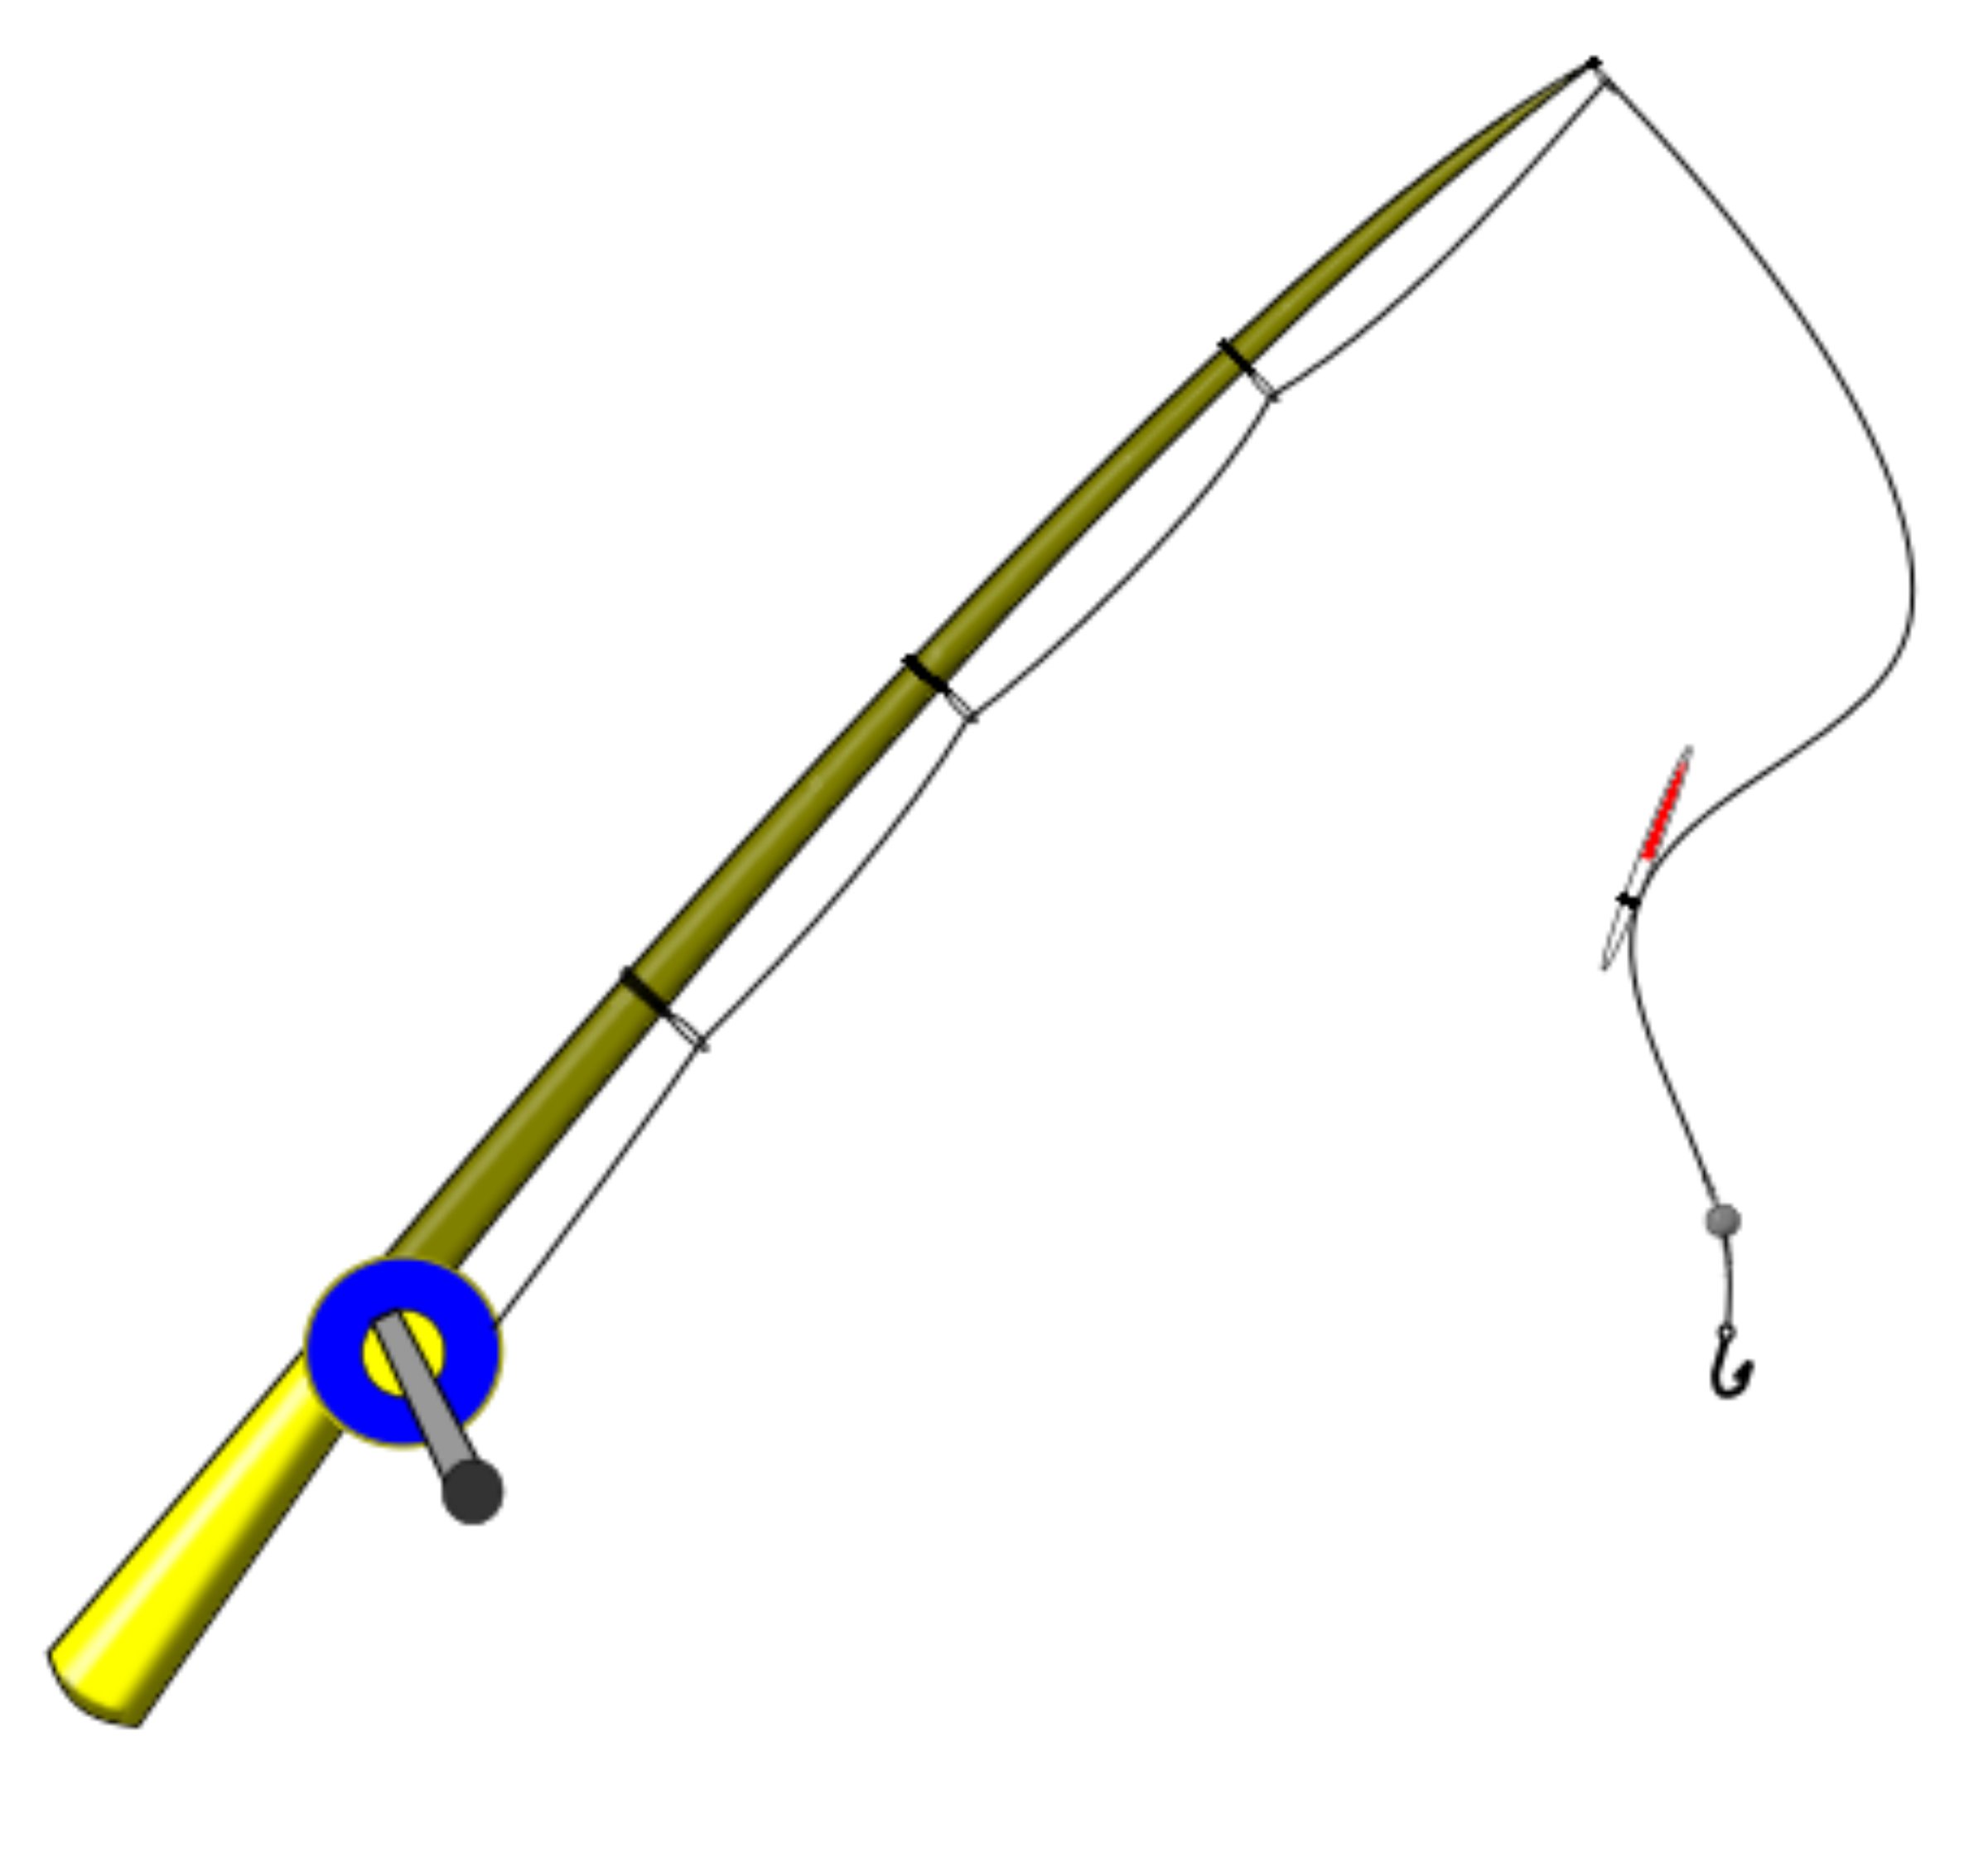 Fishing pole clipart fishing rod image 2